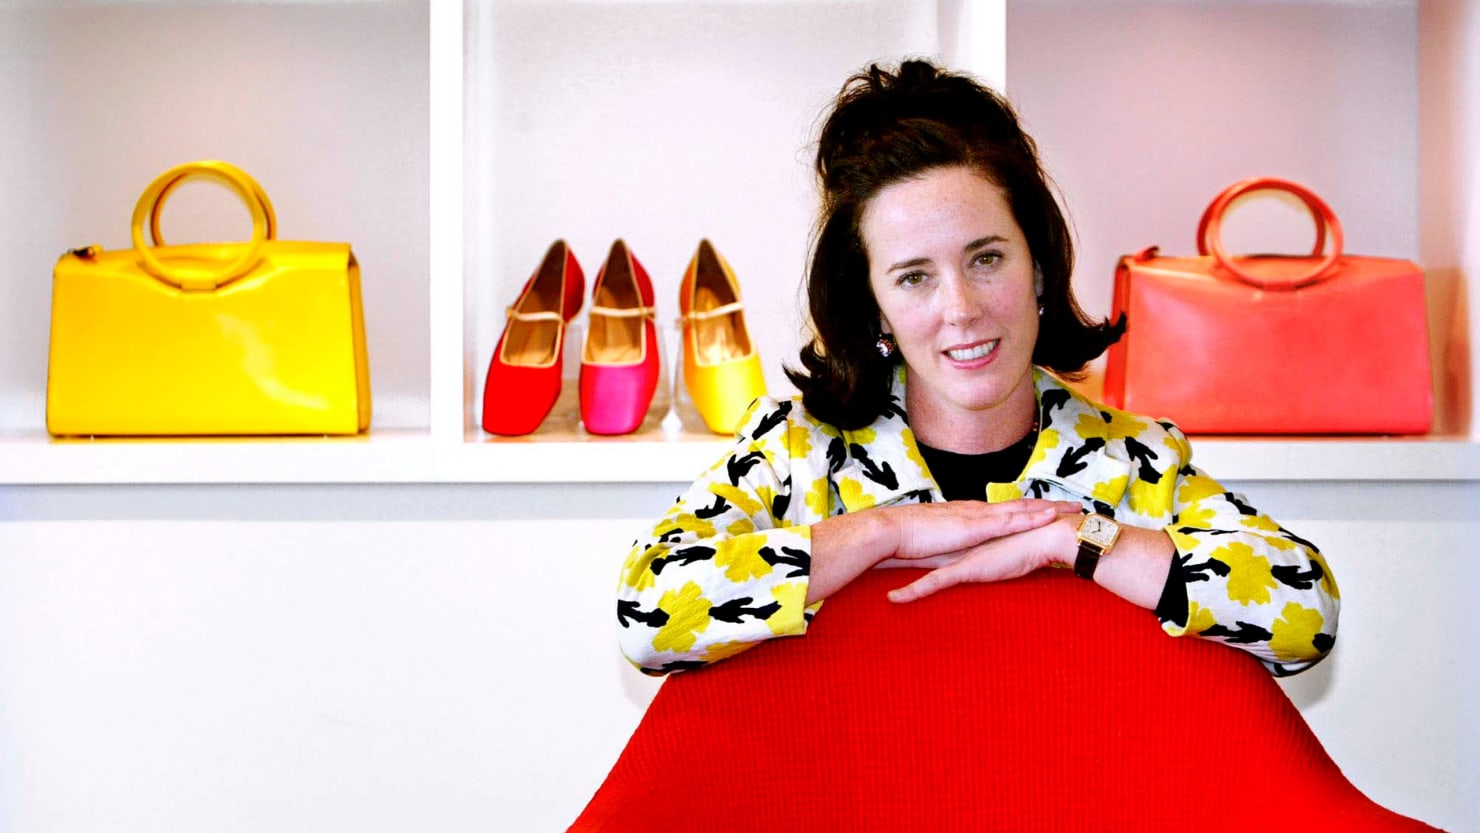 kate spade's friend on her suicide: 'there is no place lonelier than